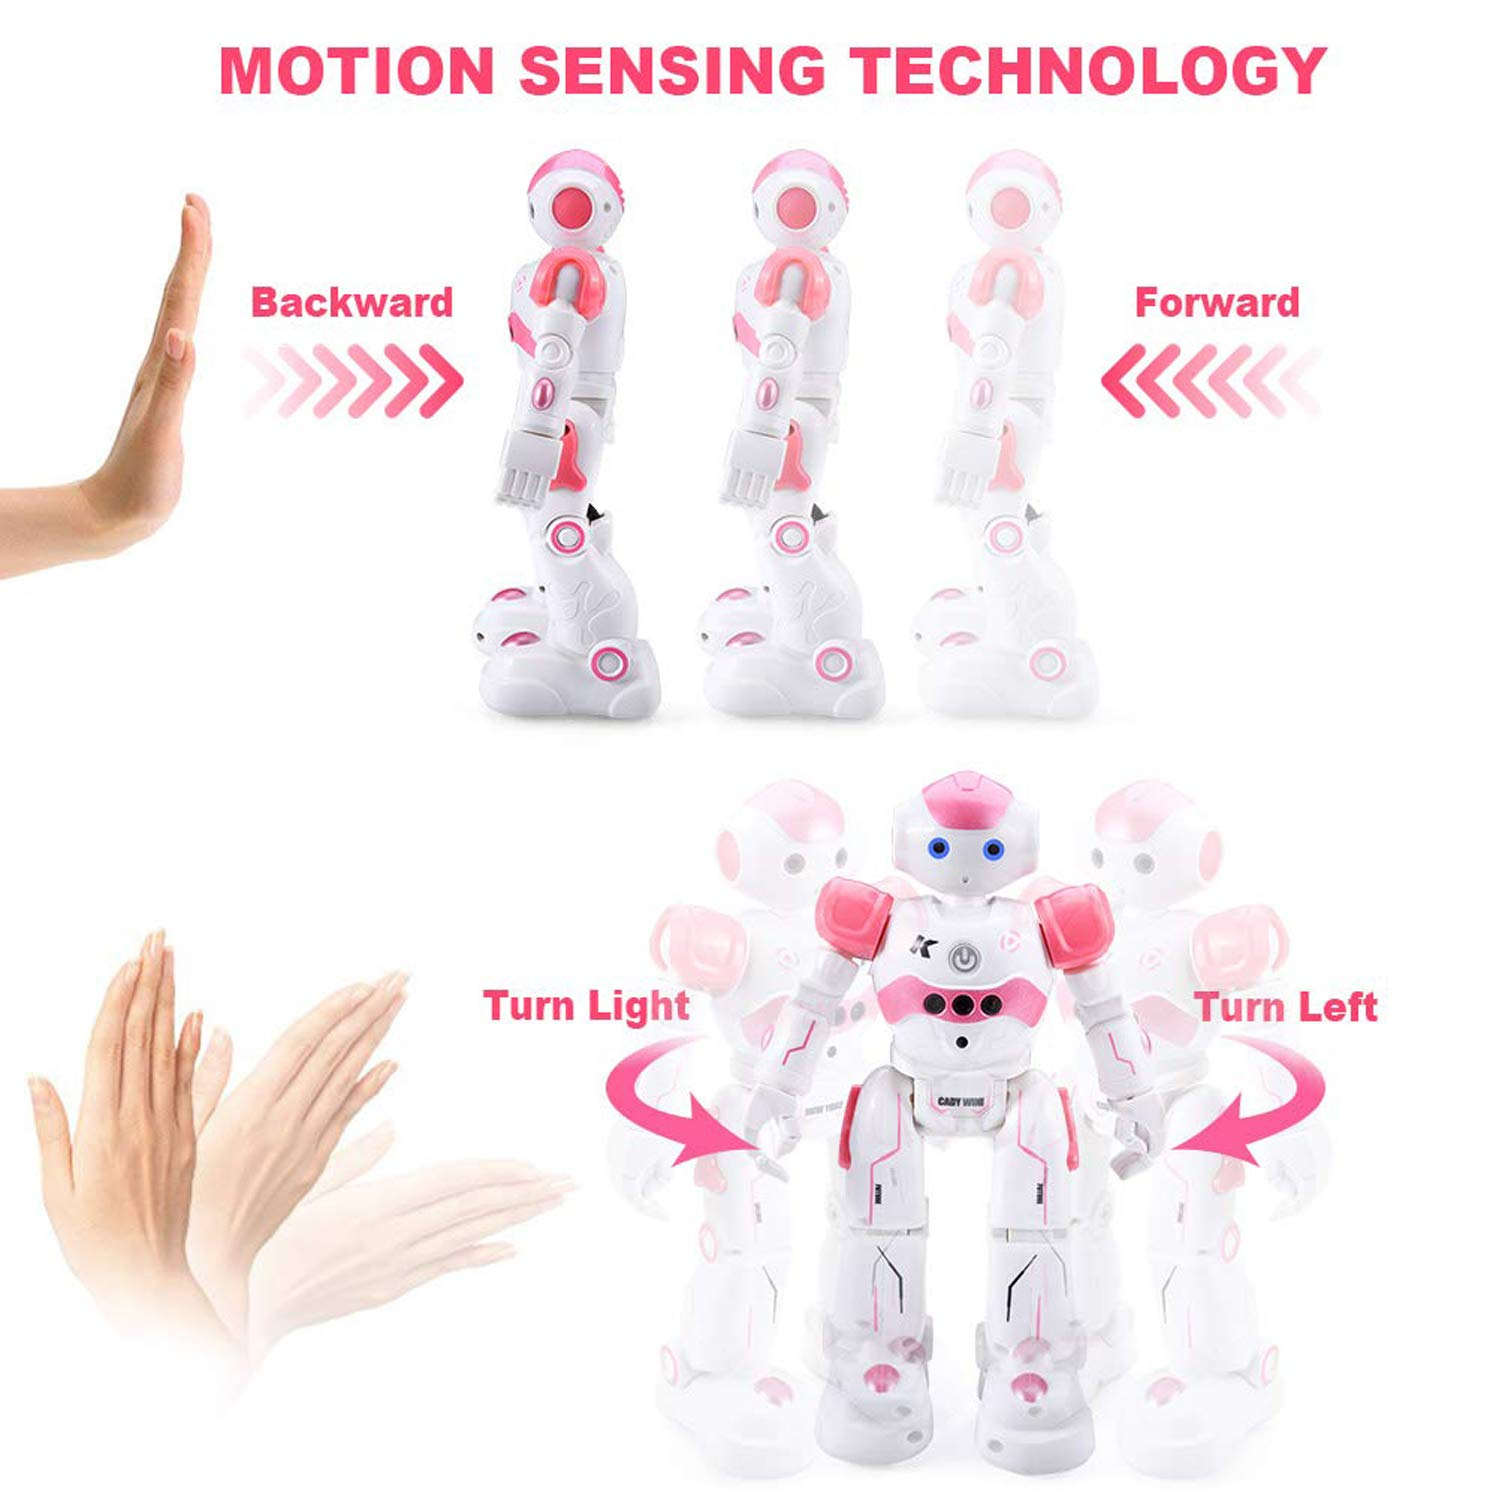 Eholder Smart Remote Control Robot Toy for kids, Rechargeable Interactive Gesture Sensing Smart RC Robot for Boys Girls,Dancing Robot Walking Music Robot Educational Toy Programmable Robotic Gift Pink - wiihuu